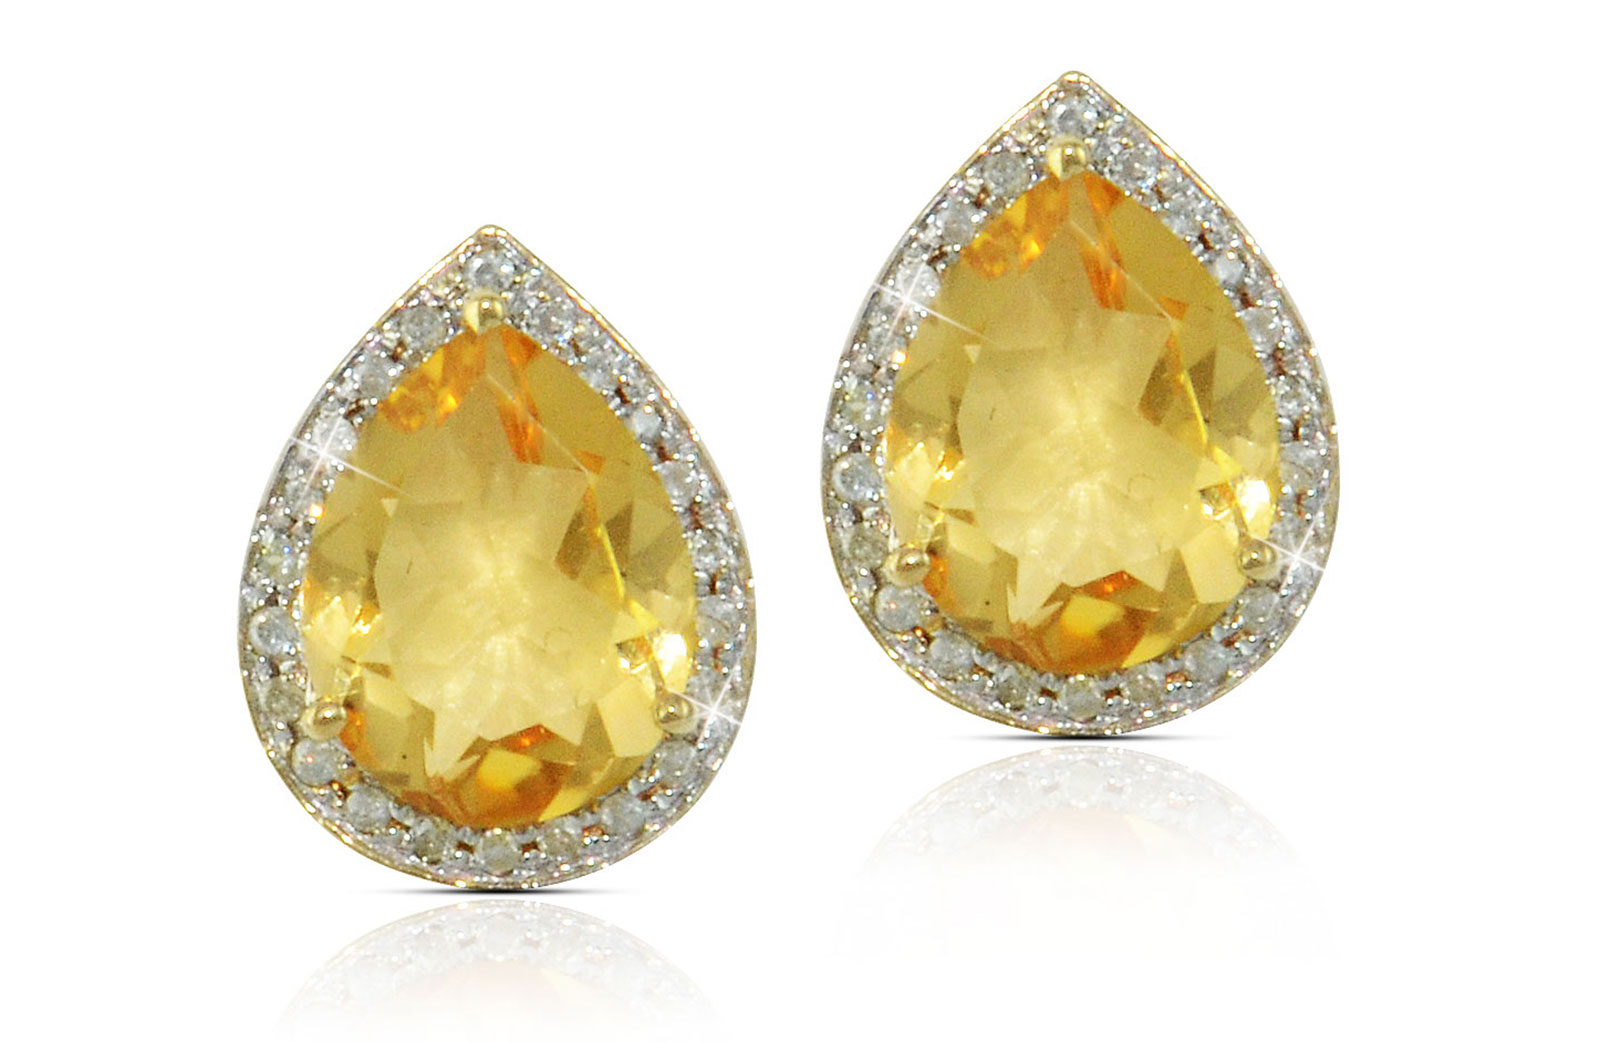 Vera Perla 18k  Gold 10mm Genuine Drop  Cut Citrine 0.24Ct Genuine Diamonds earrings